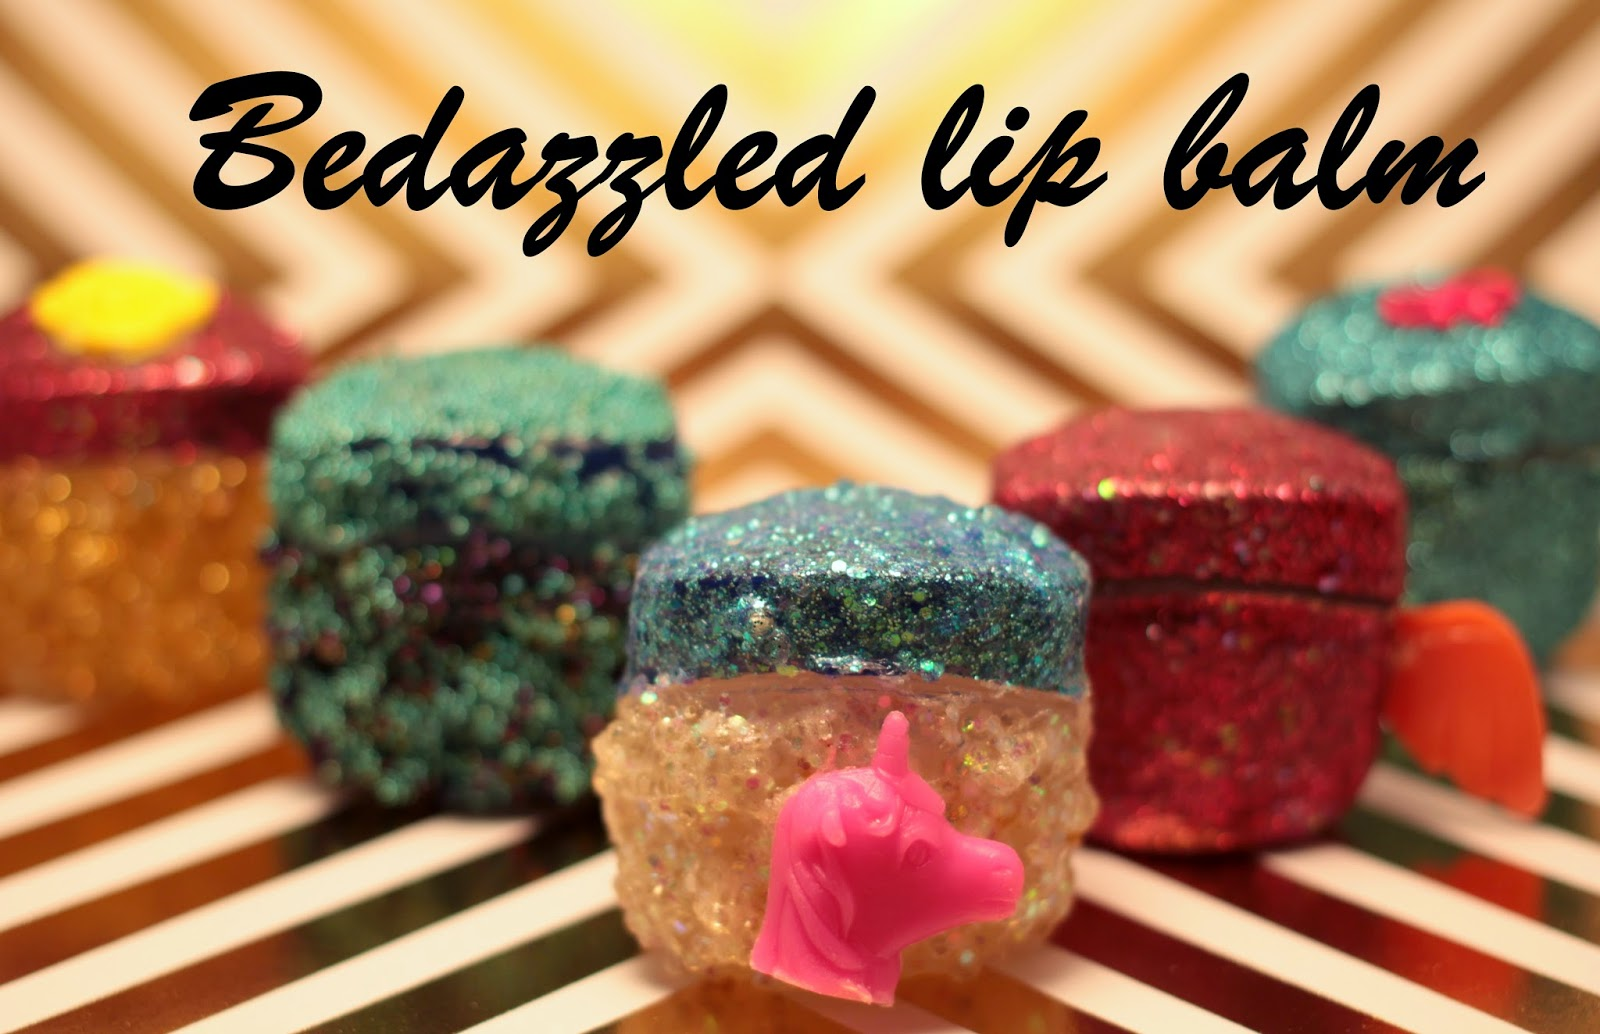 bedazzled lip balm tutorial, kawai lip balm, diy, christmas gift diy,